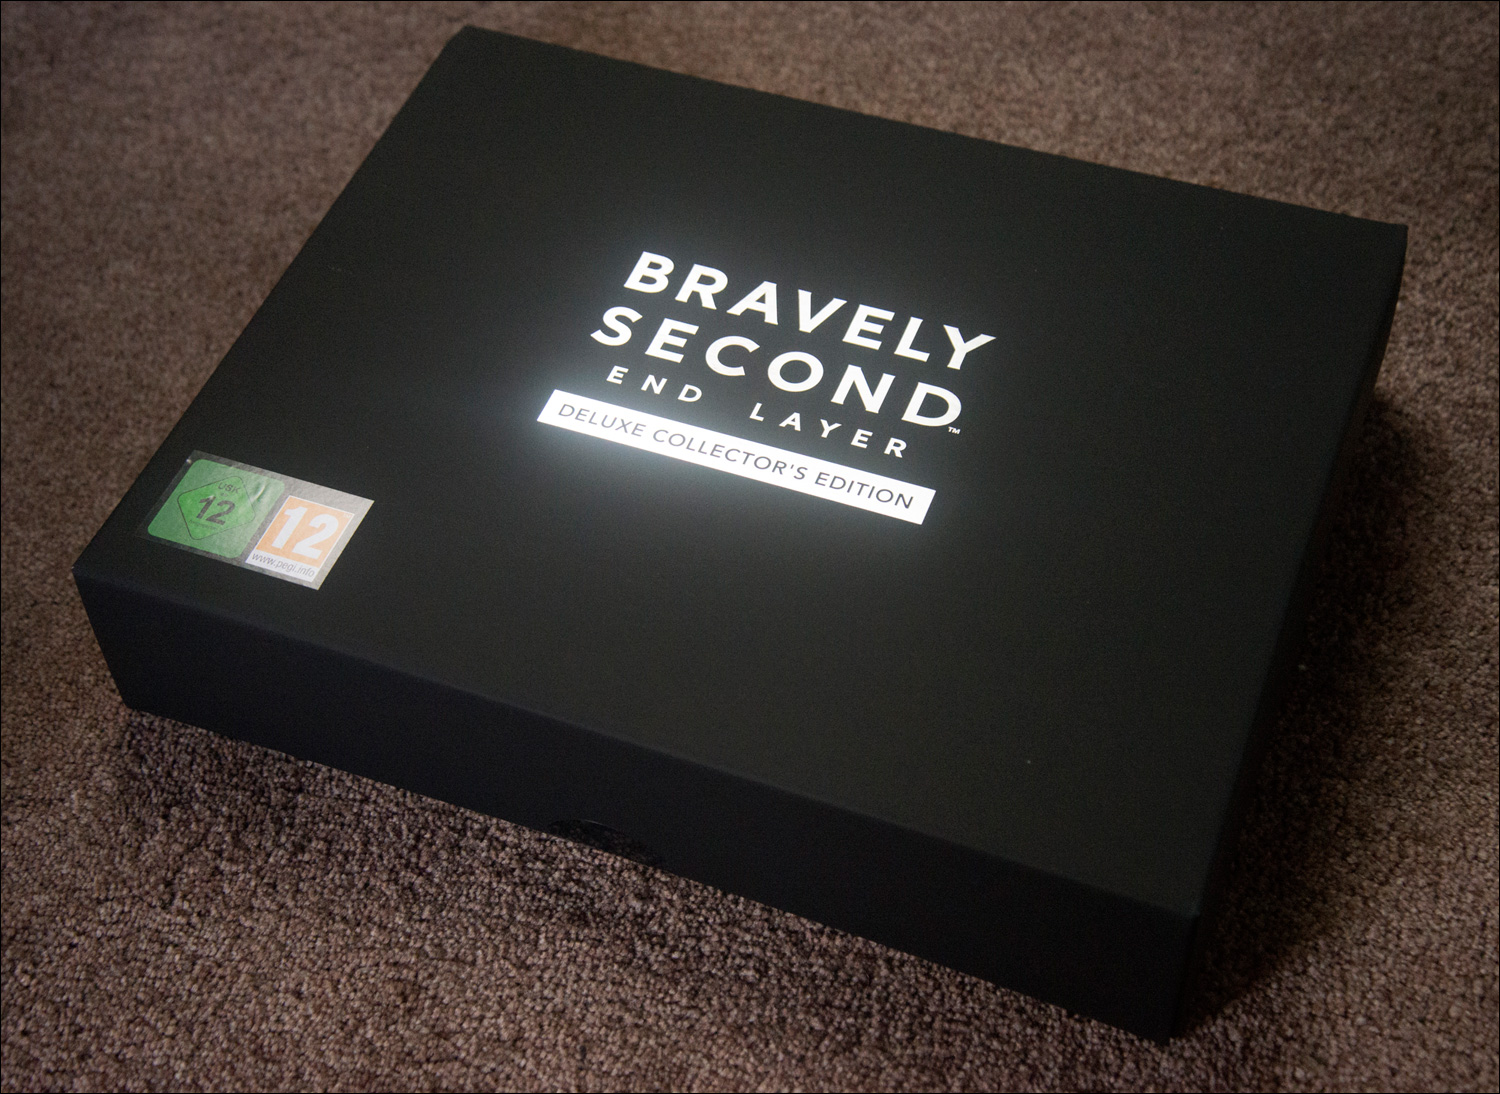 Bravely-Second-End-Layer-Deluxe-Collector's-Edition